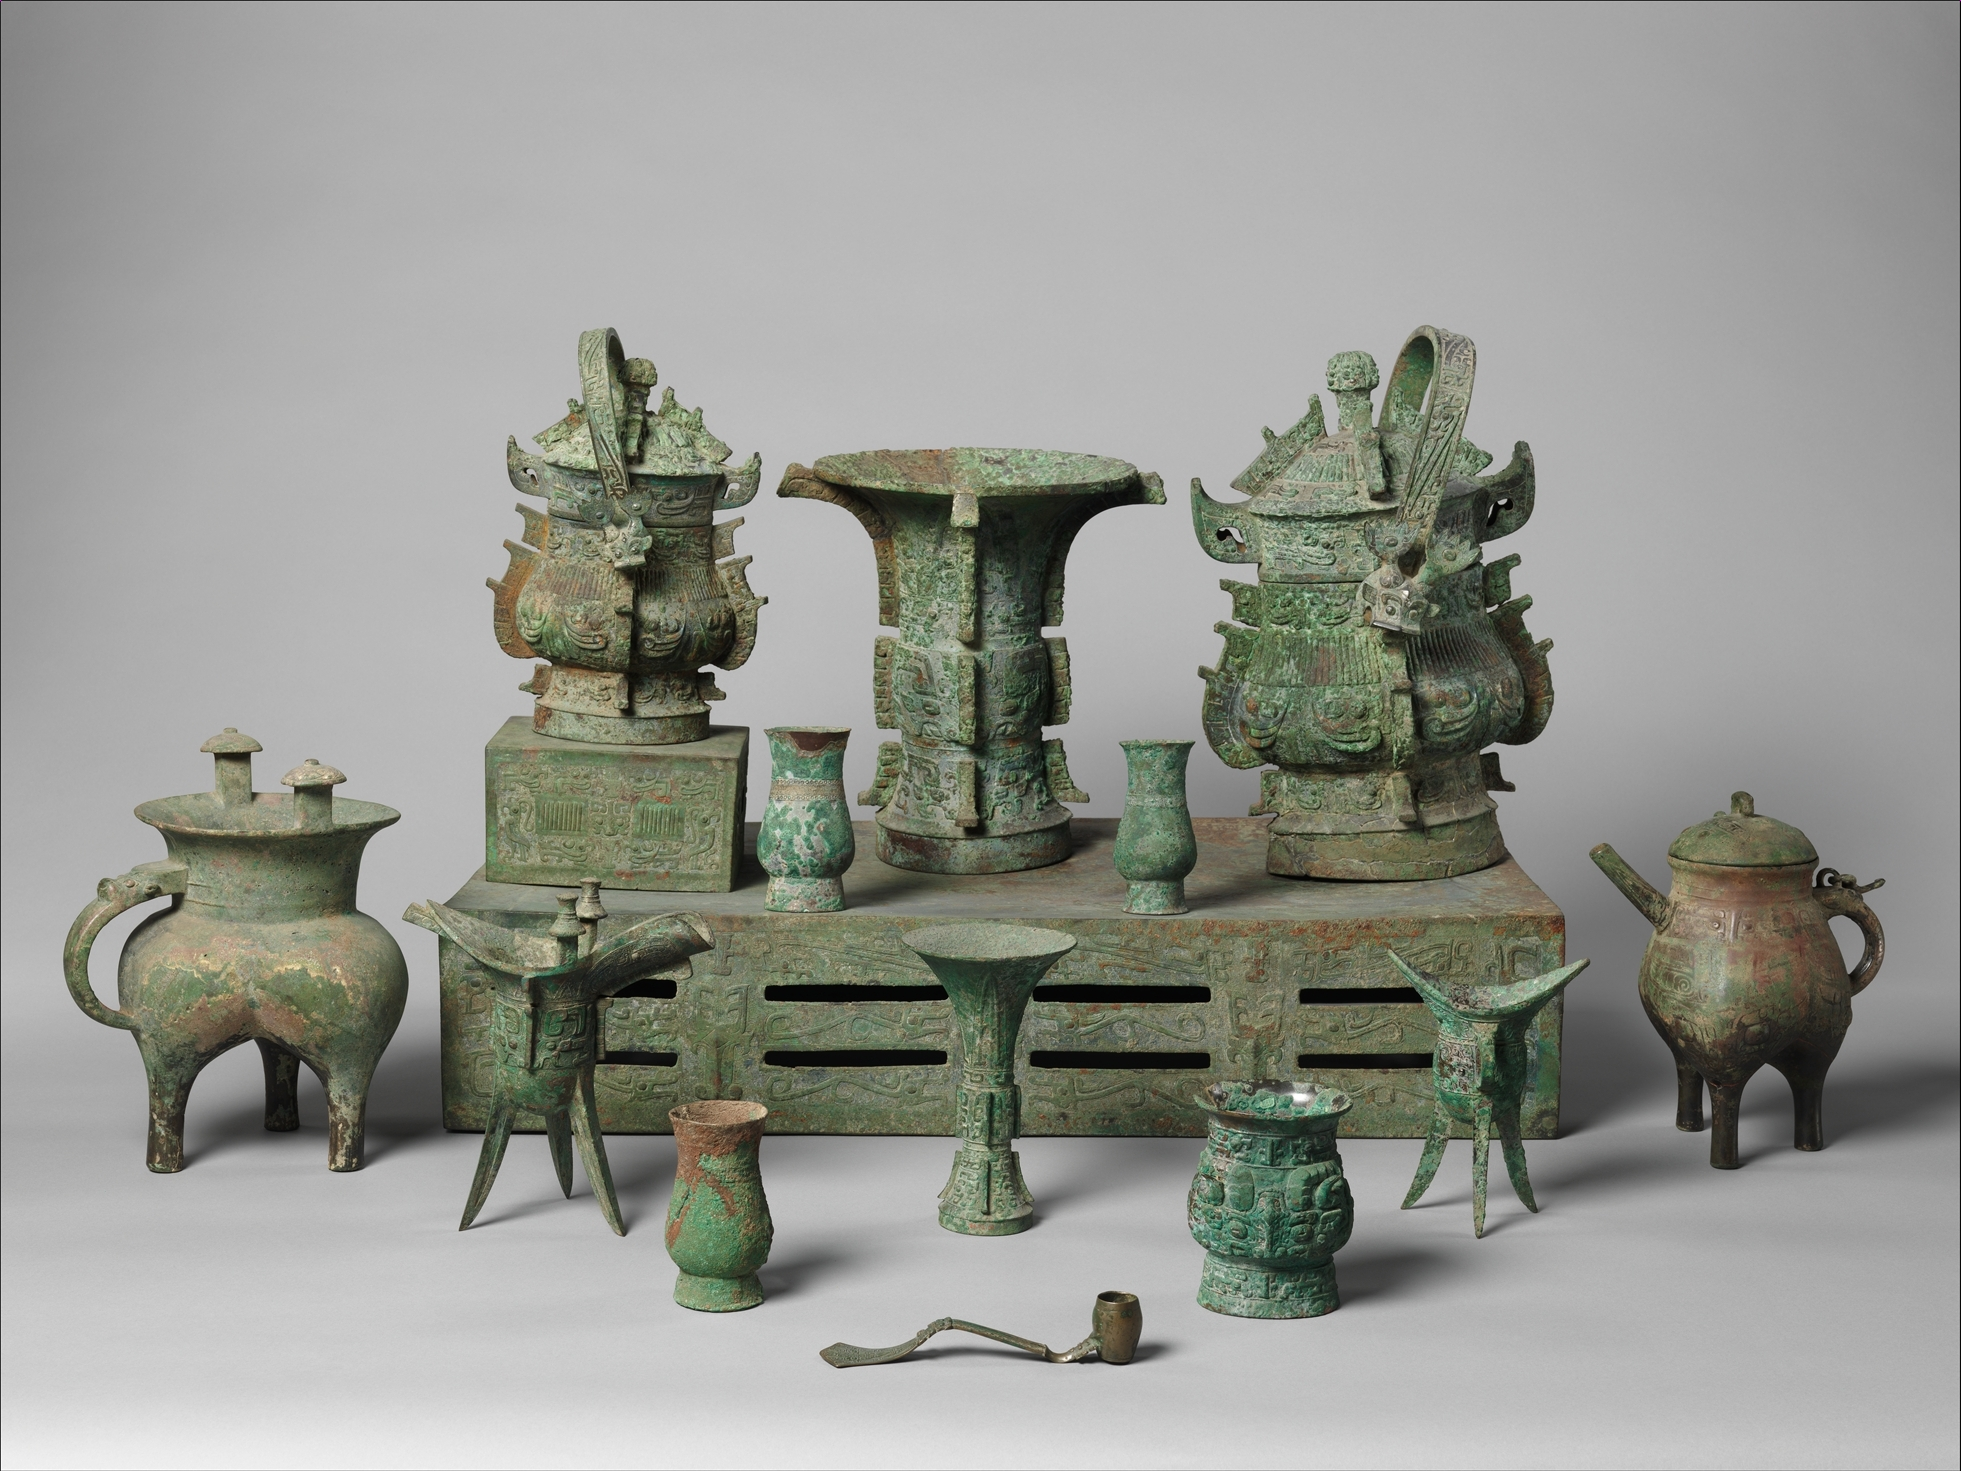 Need a topic for a term paper on asian art history?